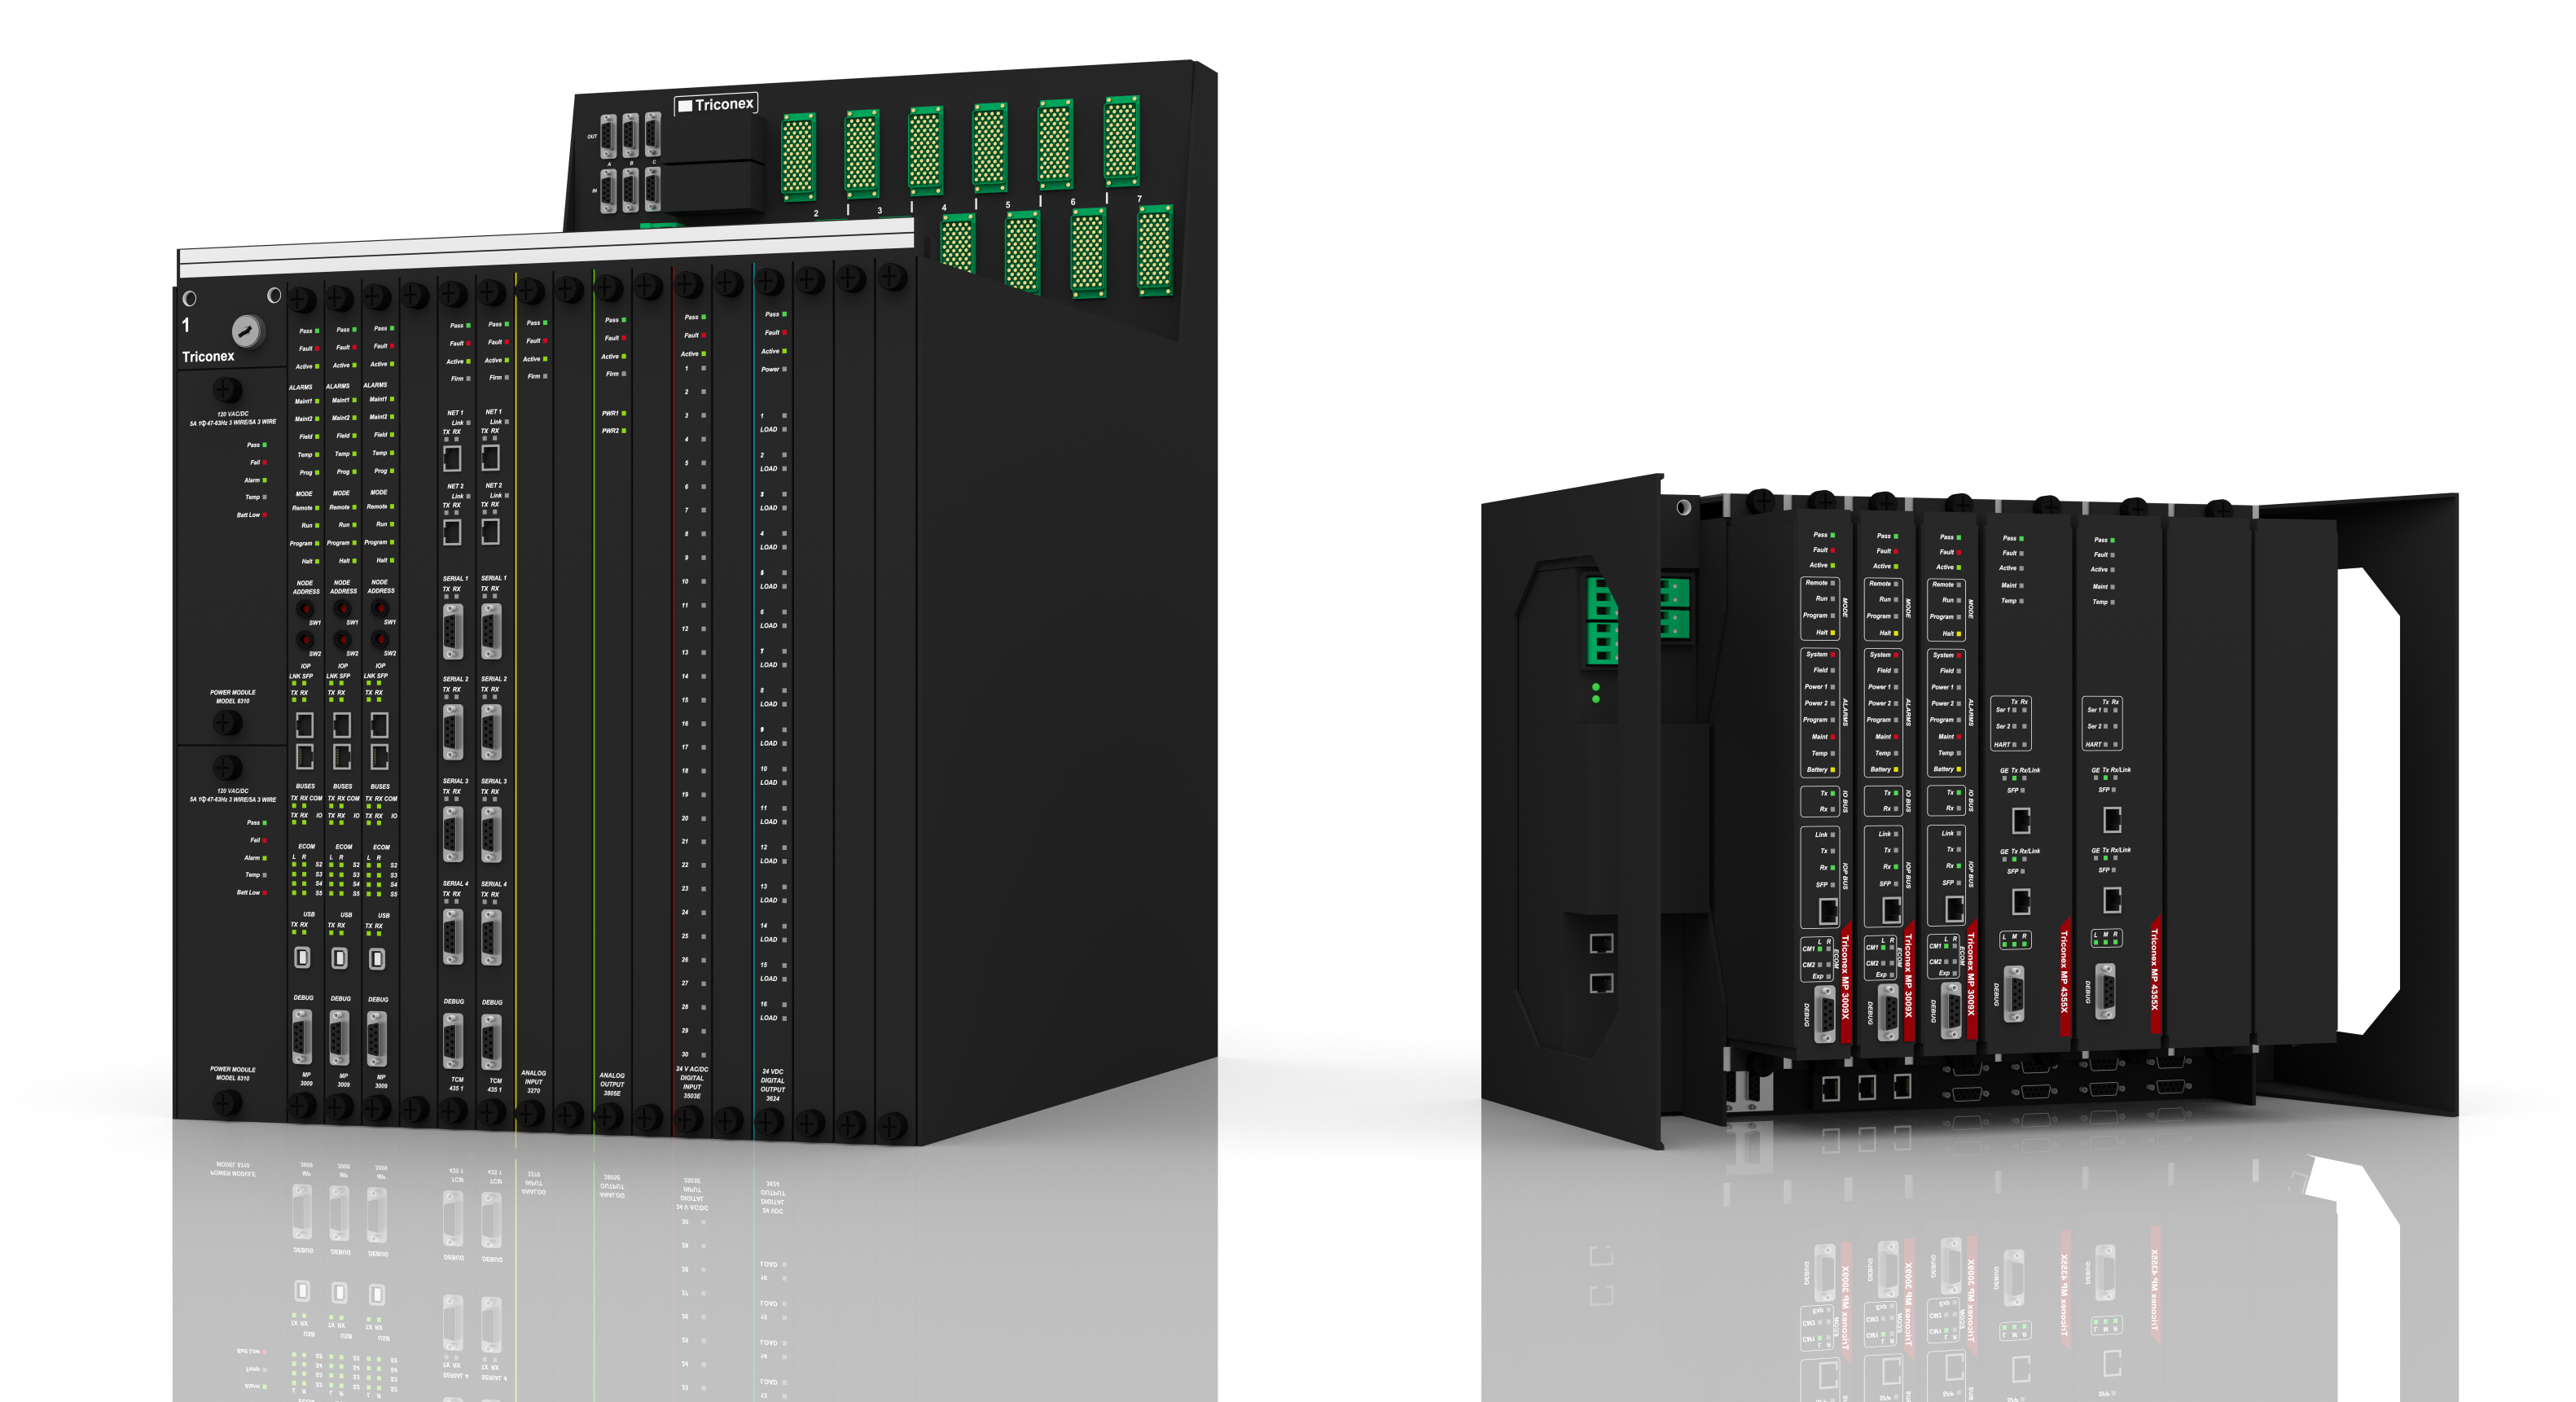 Schneider Electric releases Tricon CX compact safety system